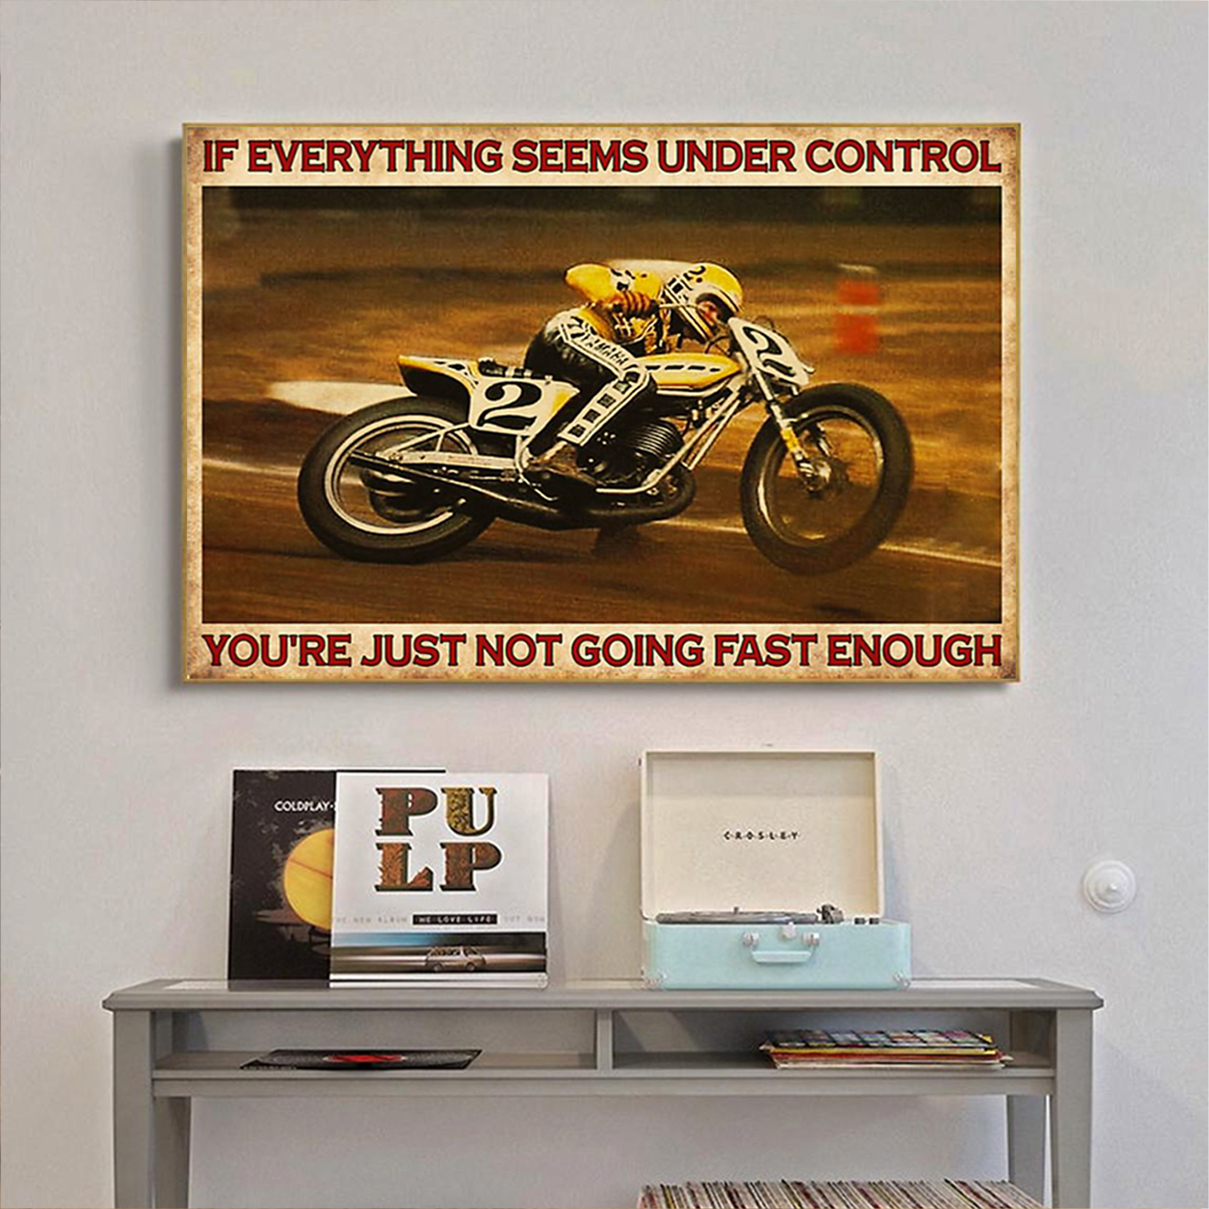 American flat track if everything seems under control poster A3